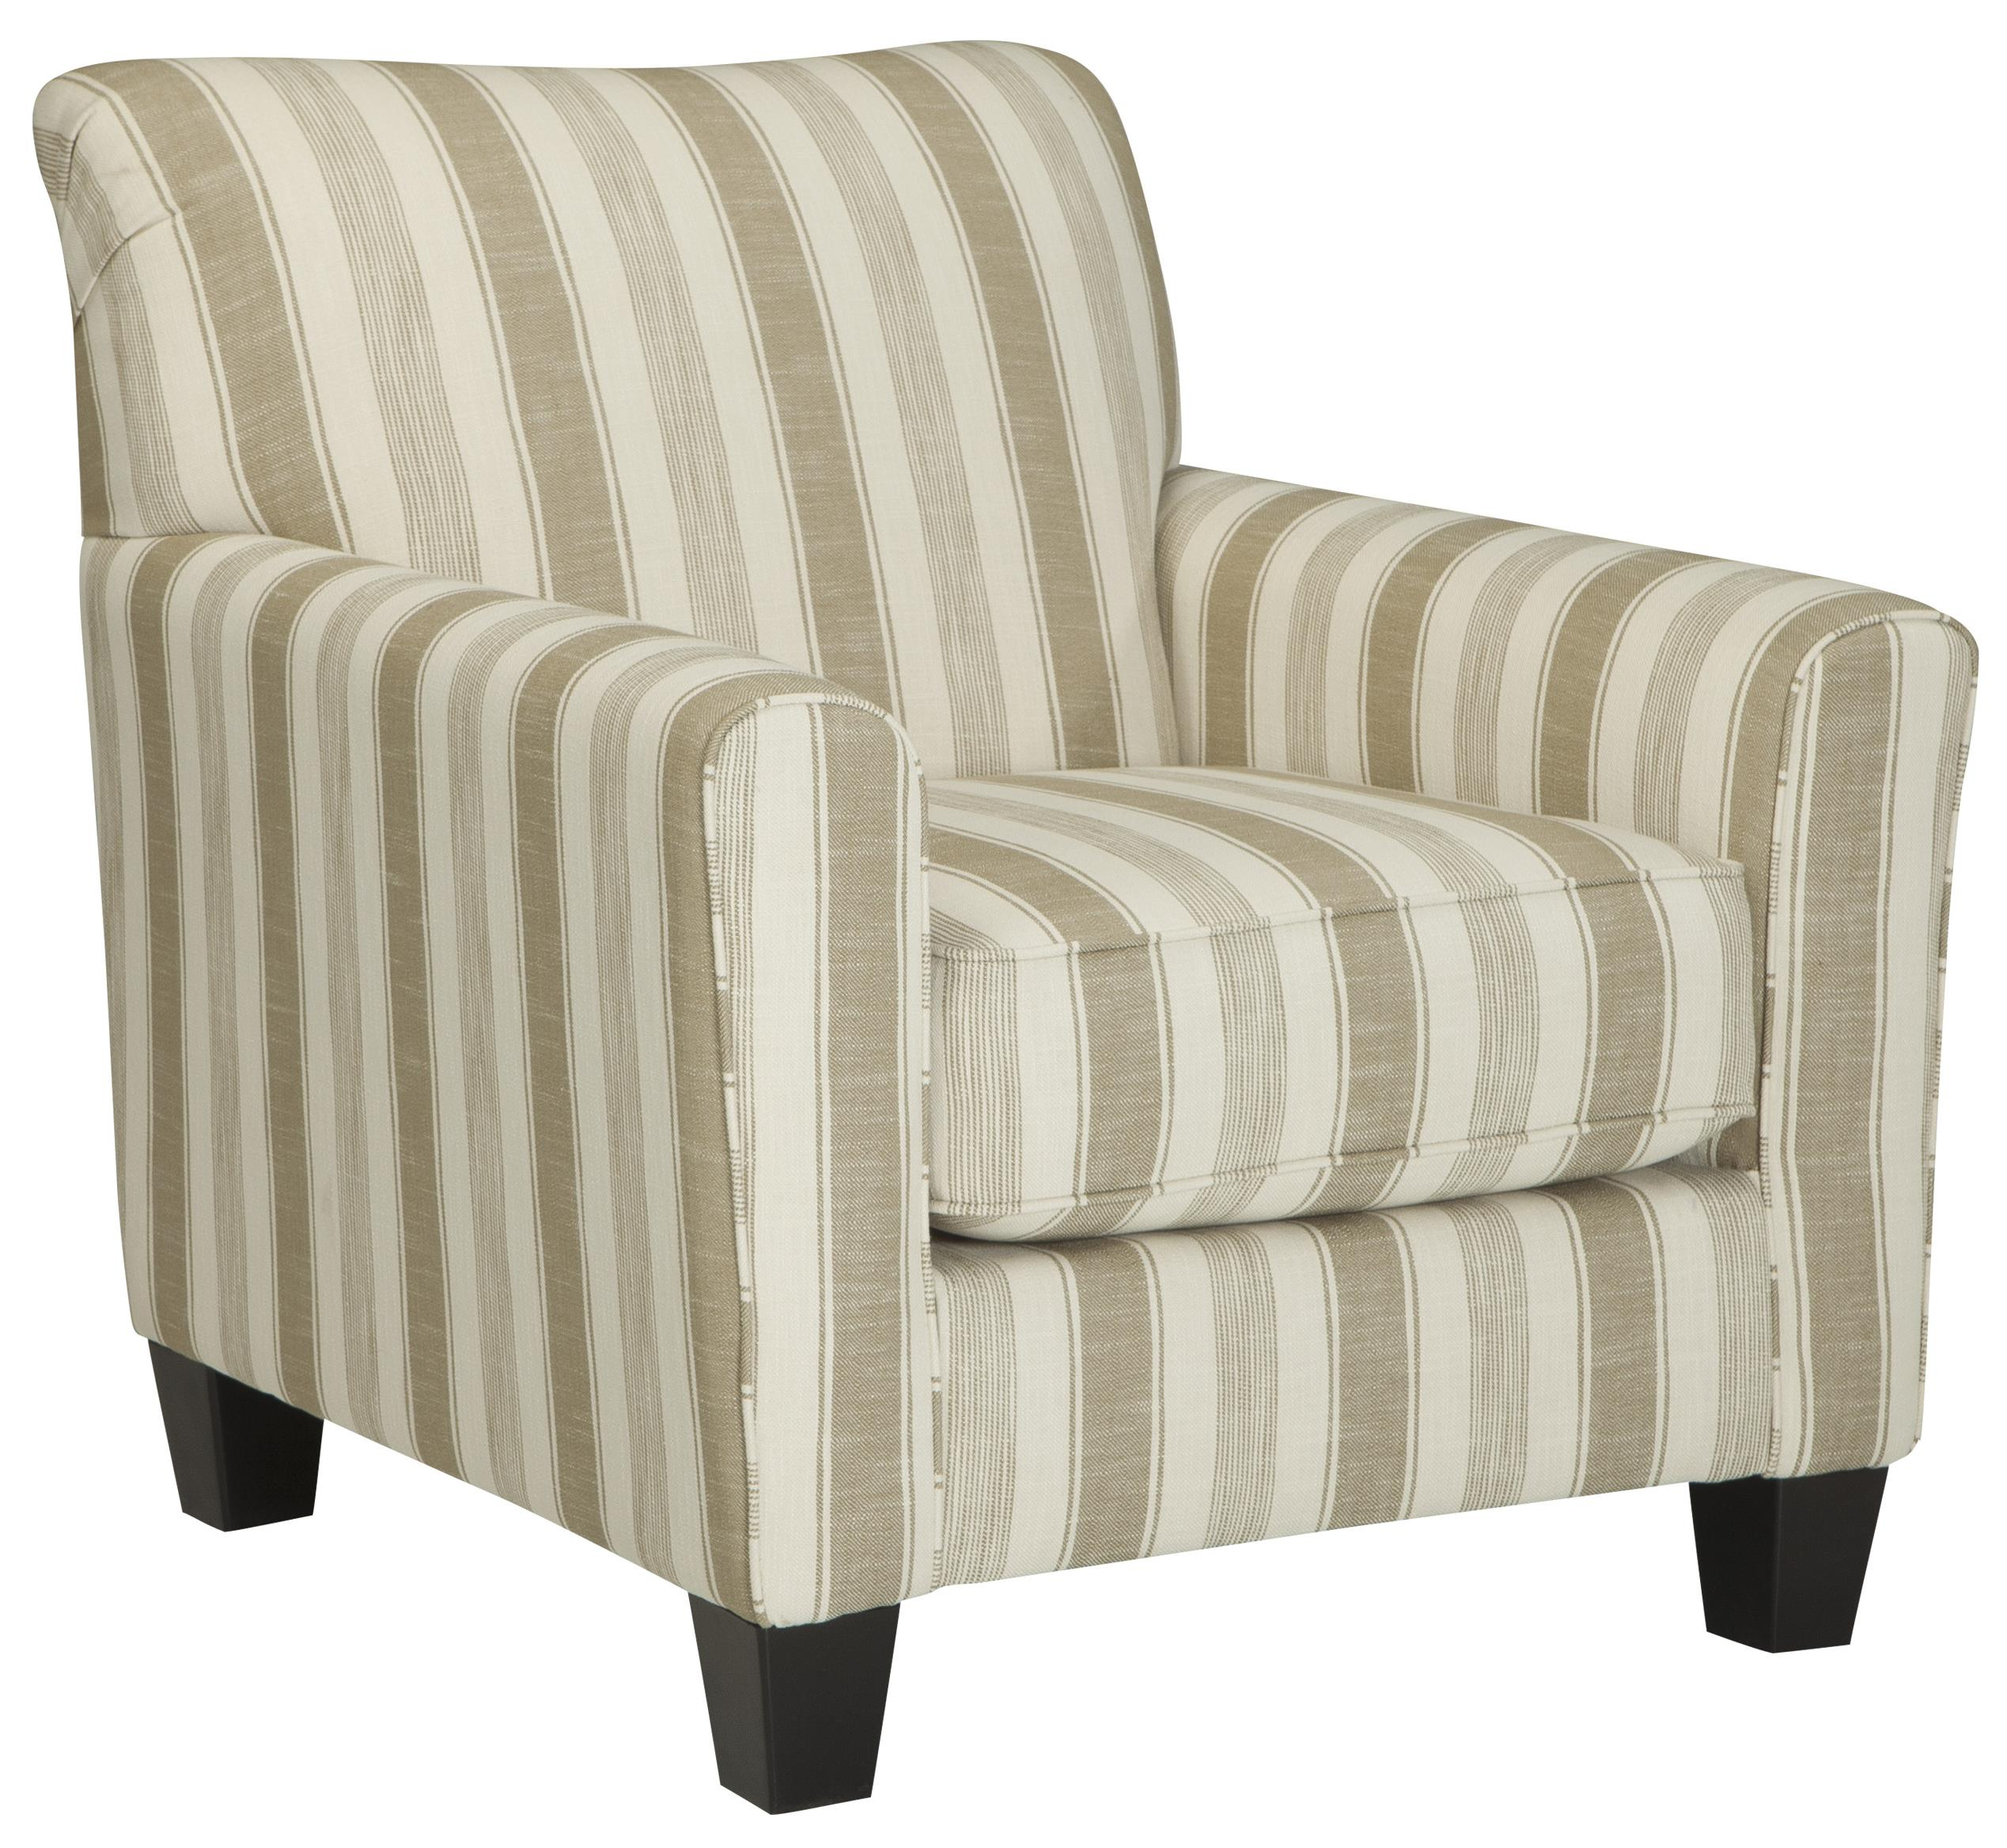 Benchcraft Laryn Accent Chair - Item Number: 5190221